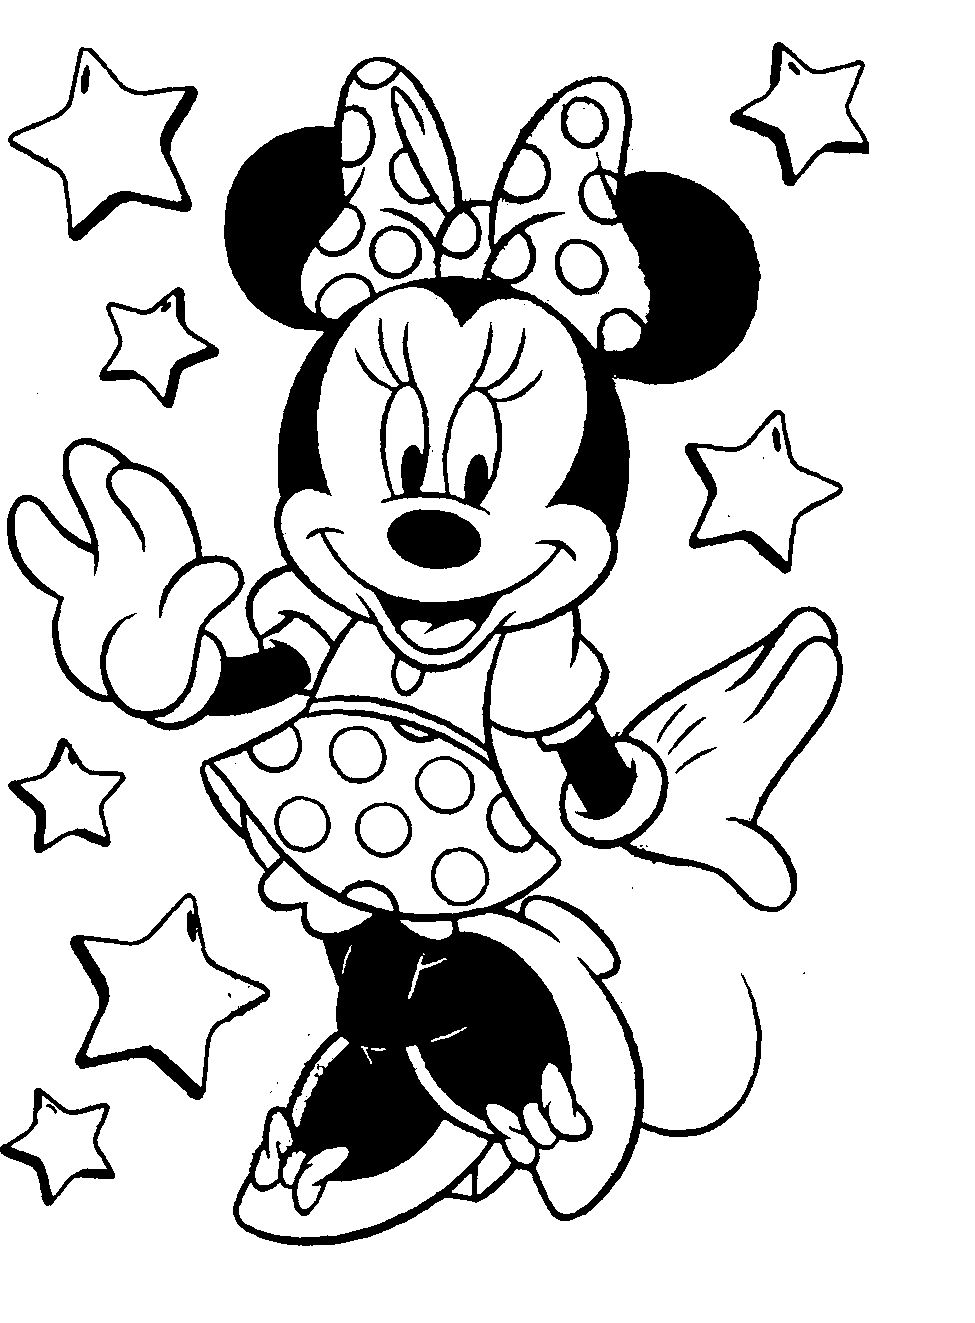 coloring pictures of minnie mouse - Google Search | Coloring pages ...